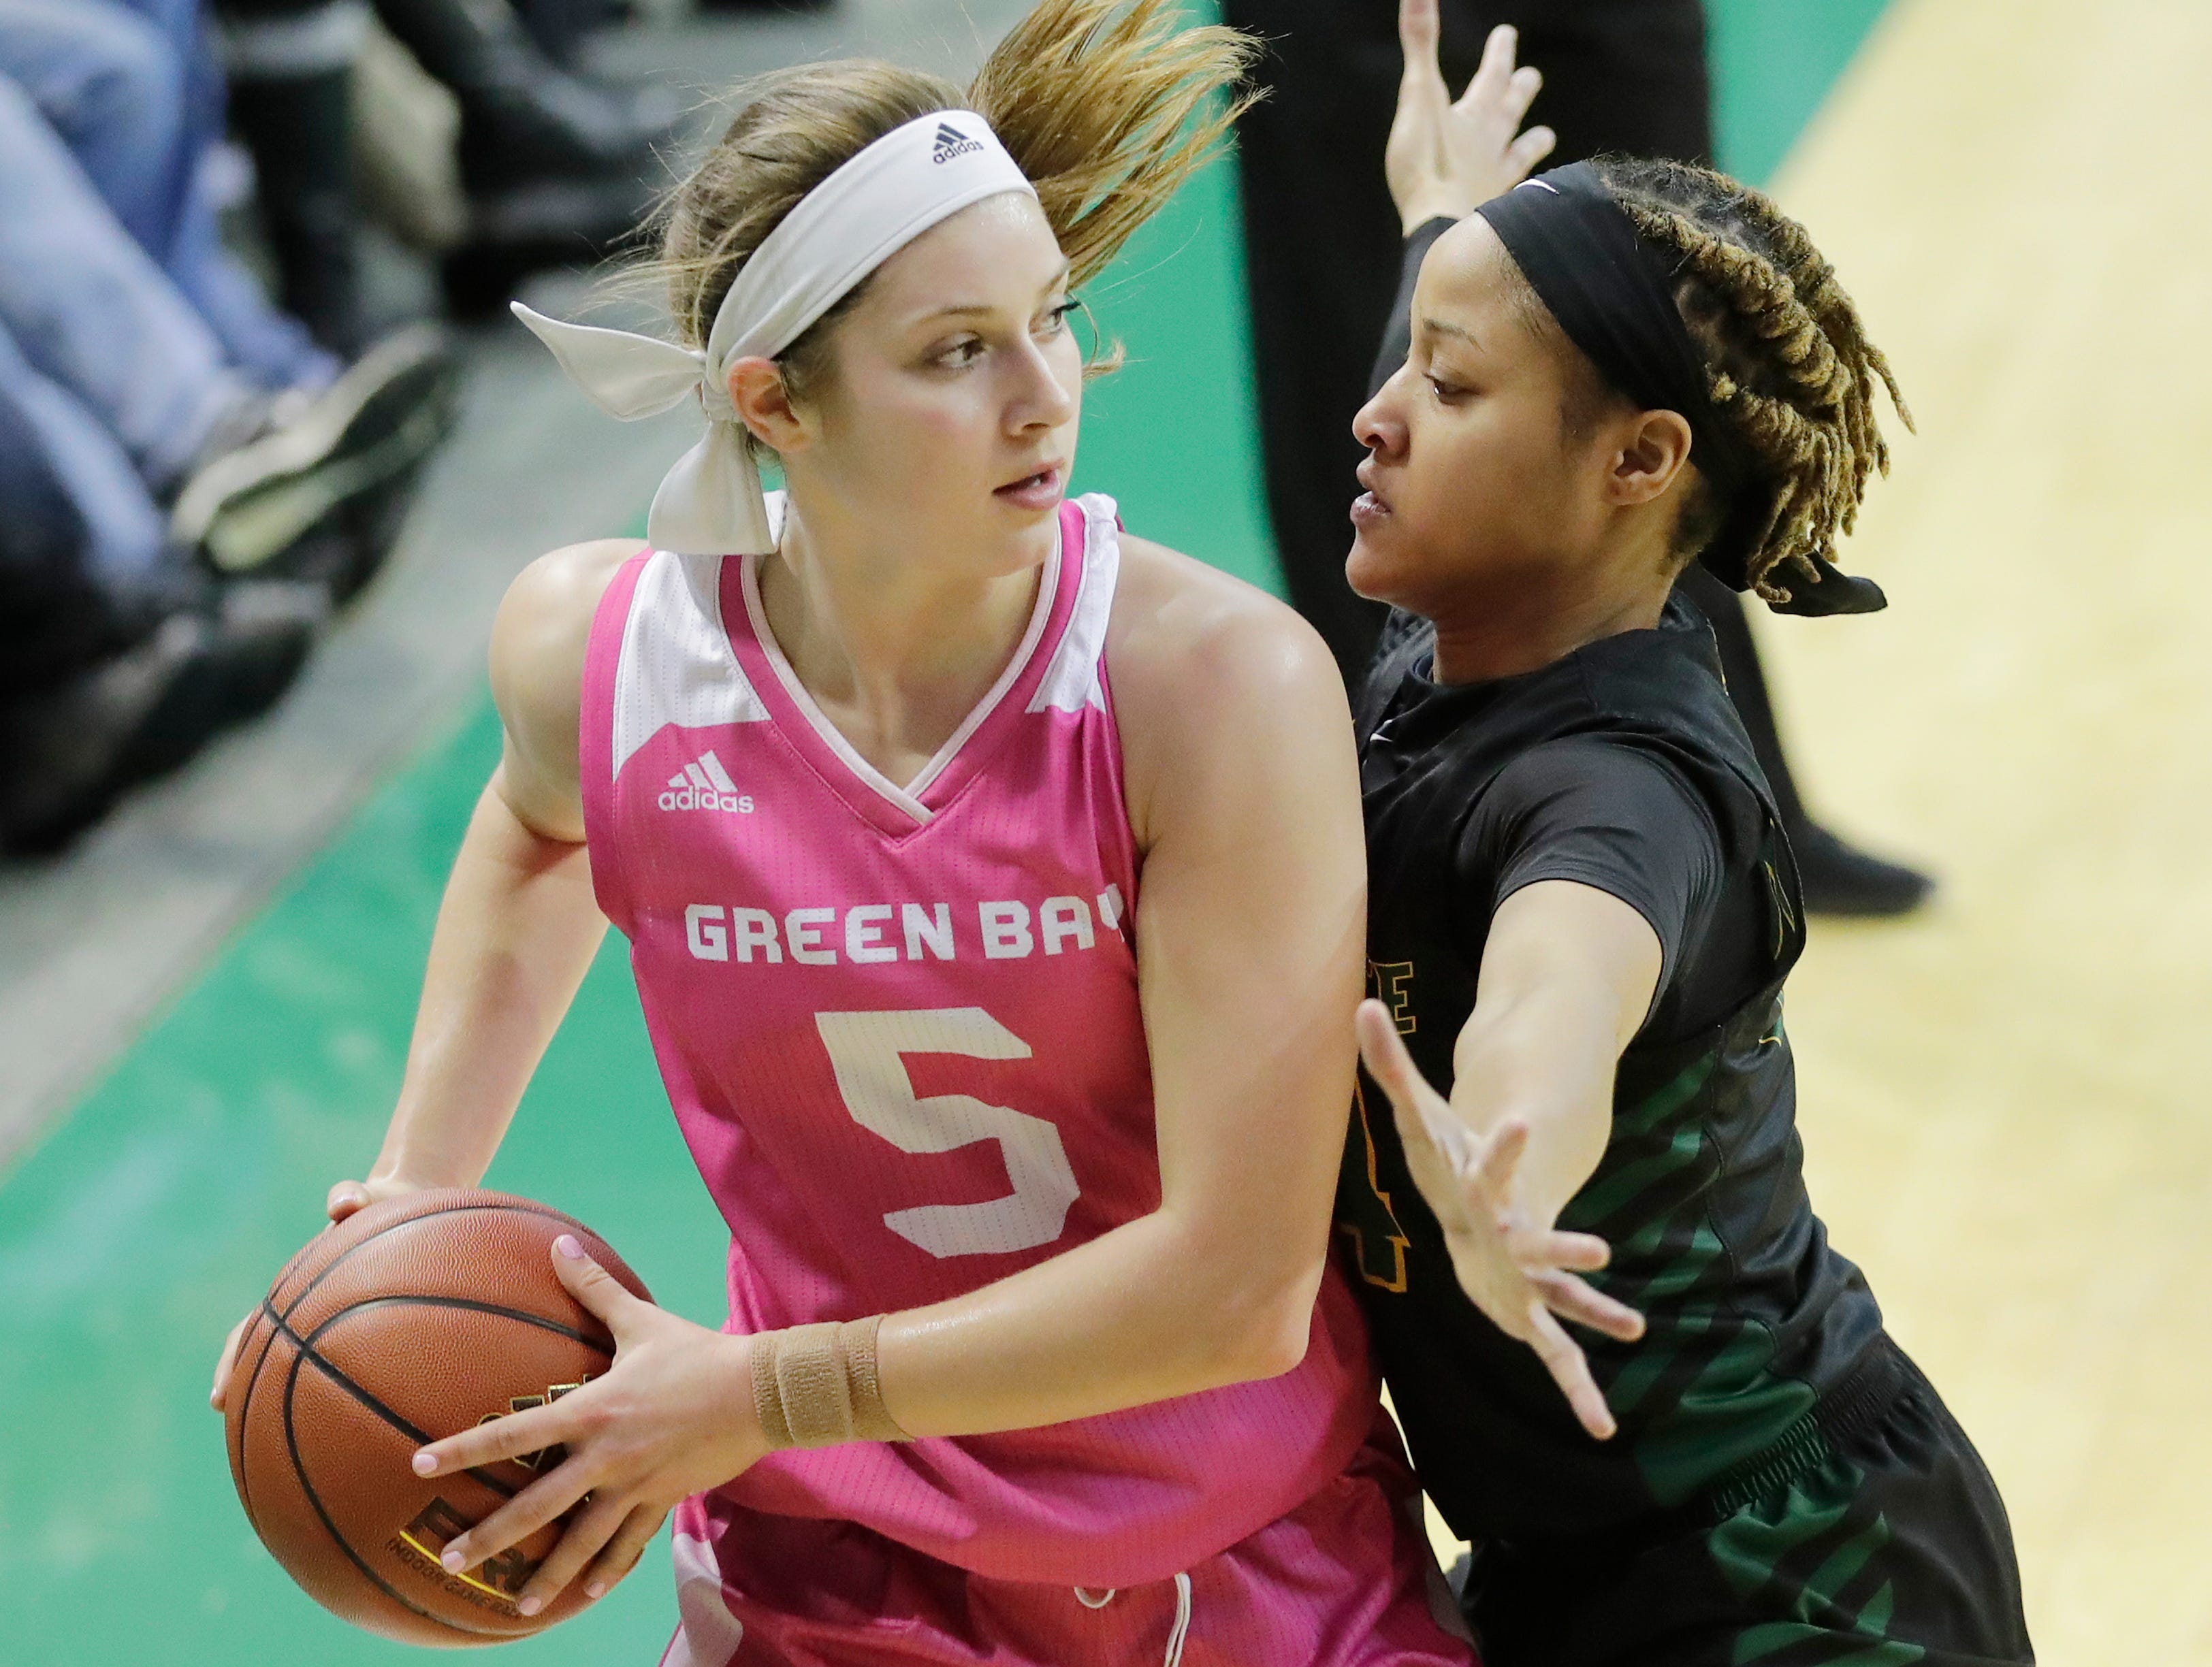 Wright State Raiders guard Michal Miller (24) guards Green Bay Phoenix guard Laken James (5) in a Horizon League women's basketball game at the Kress Center on Saturday, February 9, 2019 in Green Bay, Wis.